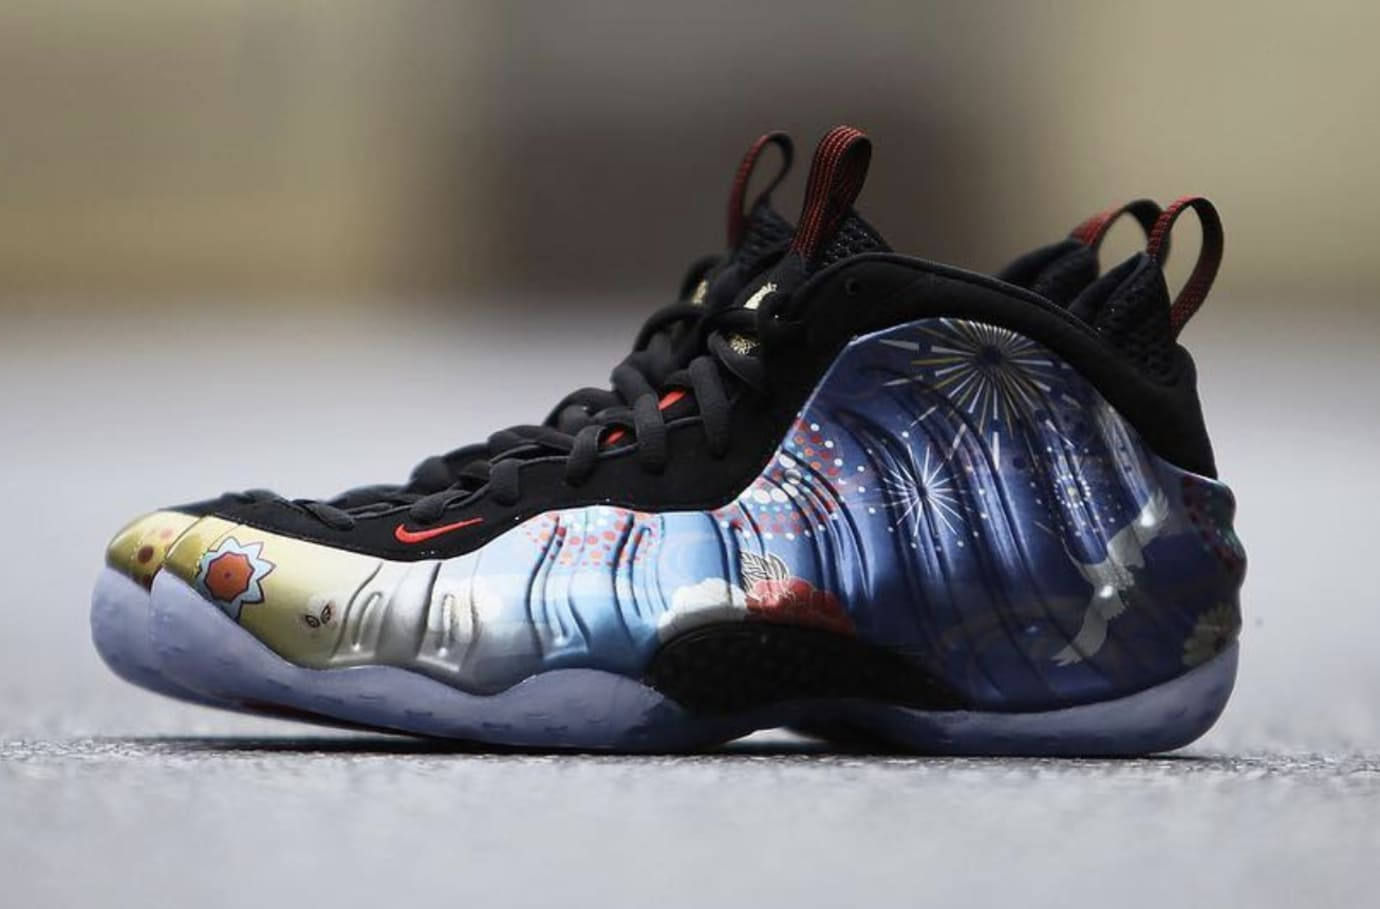 huge selection of 919af 89ed5 Image via gc911 · Nike Air Foamposite One  CNY  1